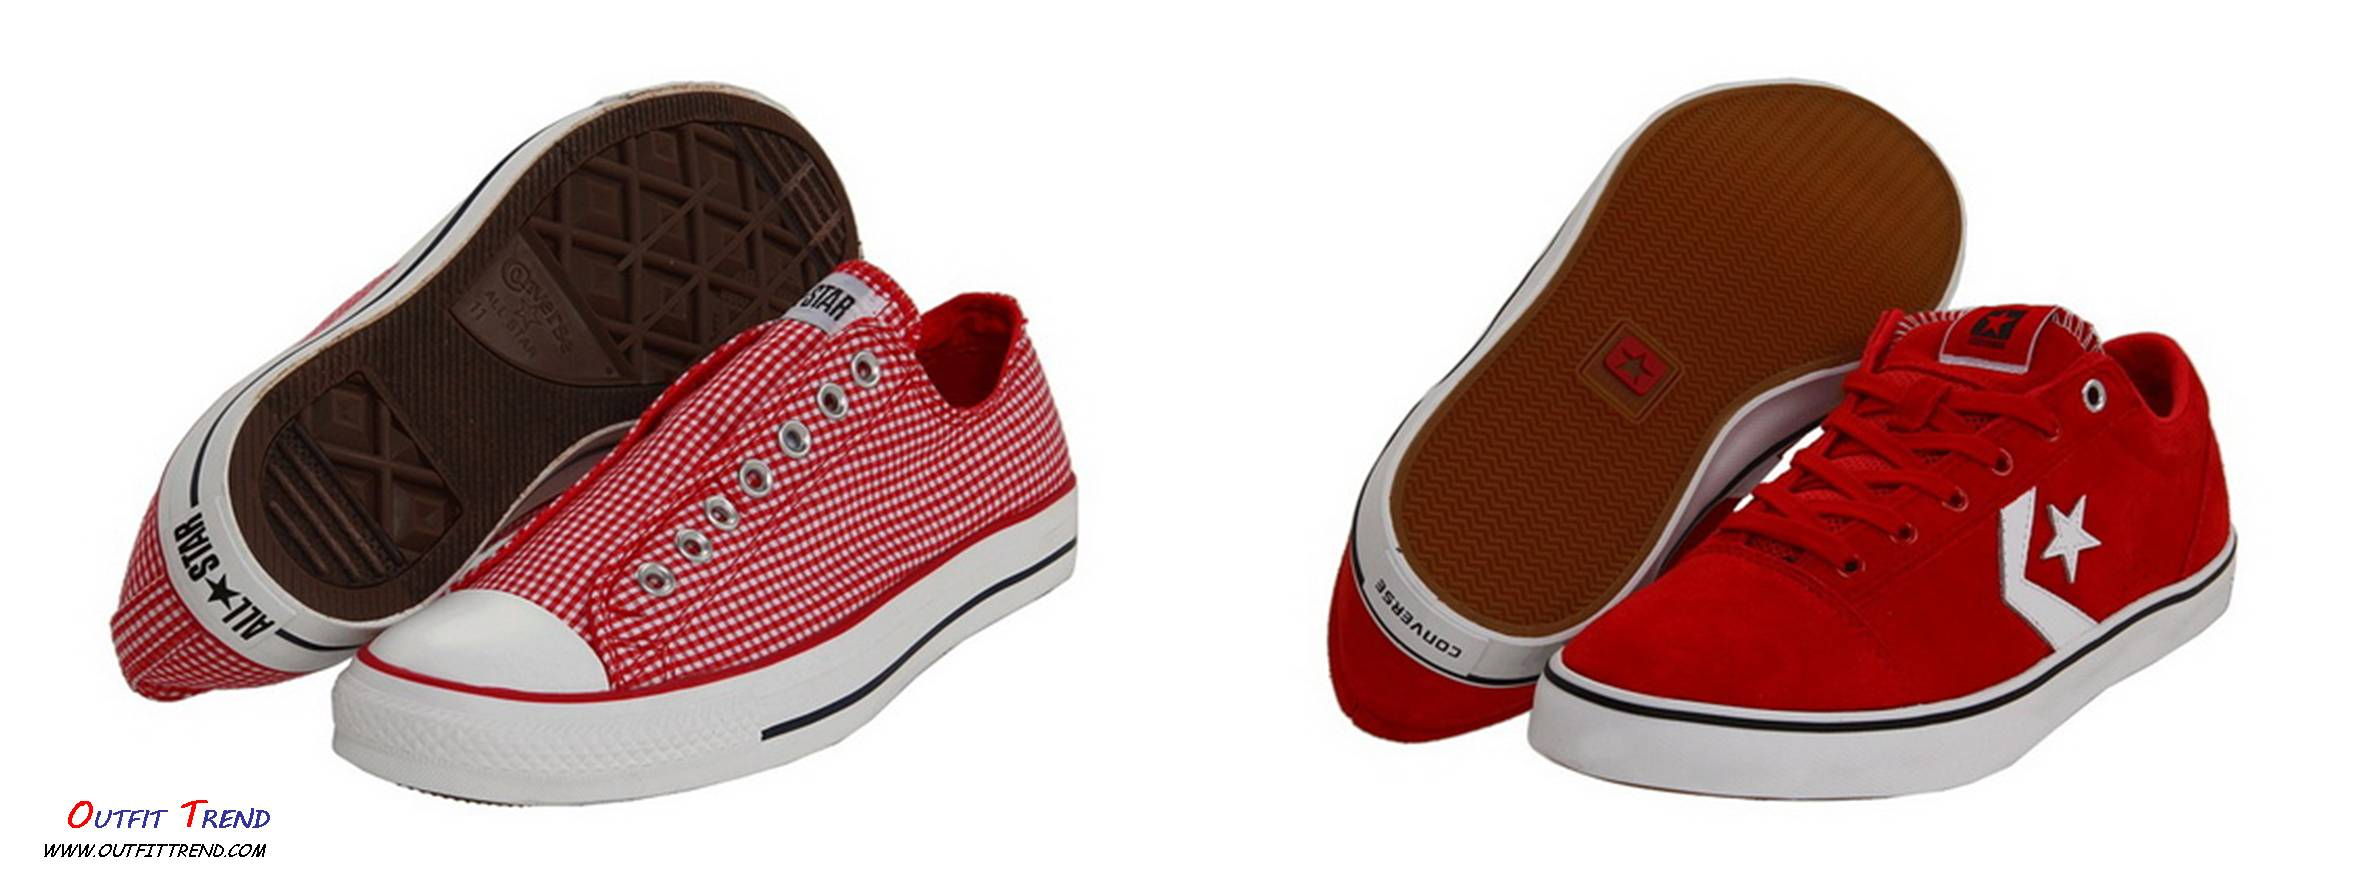 proporcionar un montón de tecnicas modernas ofertas exclusivas mens red converse high tops Sale,up to 48% Discounts